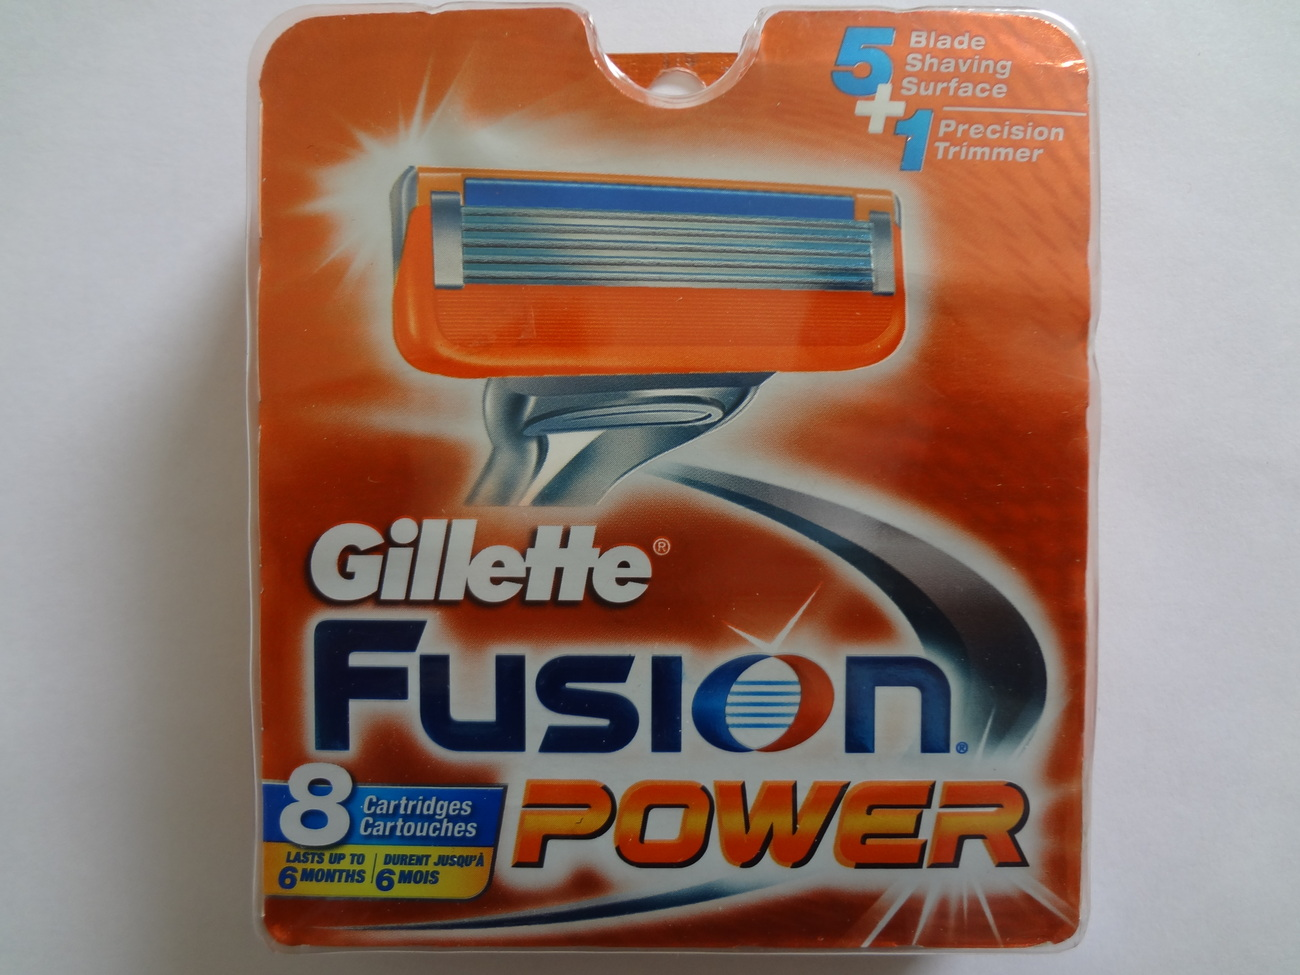 Gillette Fusion Power Refill Cartridges (8 Count)